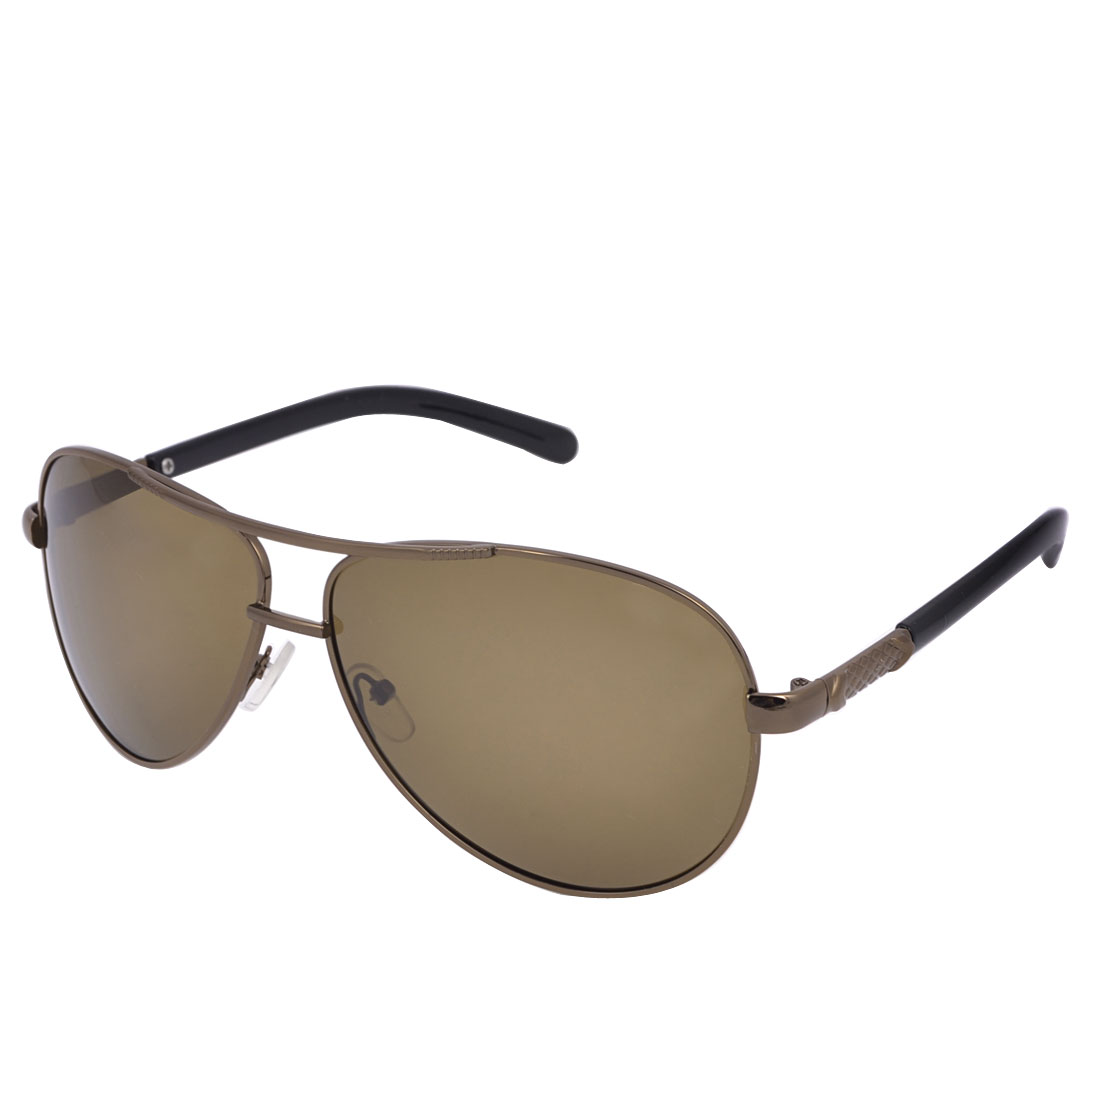 Man Two Bridge Metal Full Rim Brown Lens Polarized Sunglasses Sun Glasses